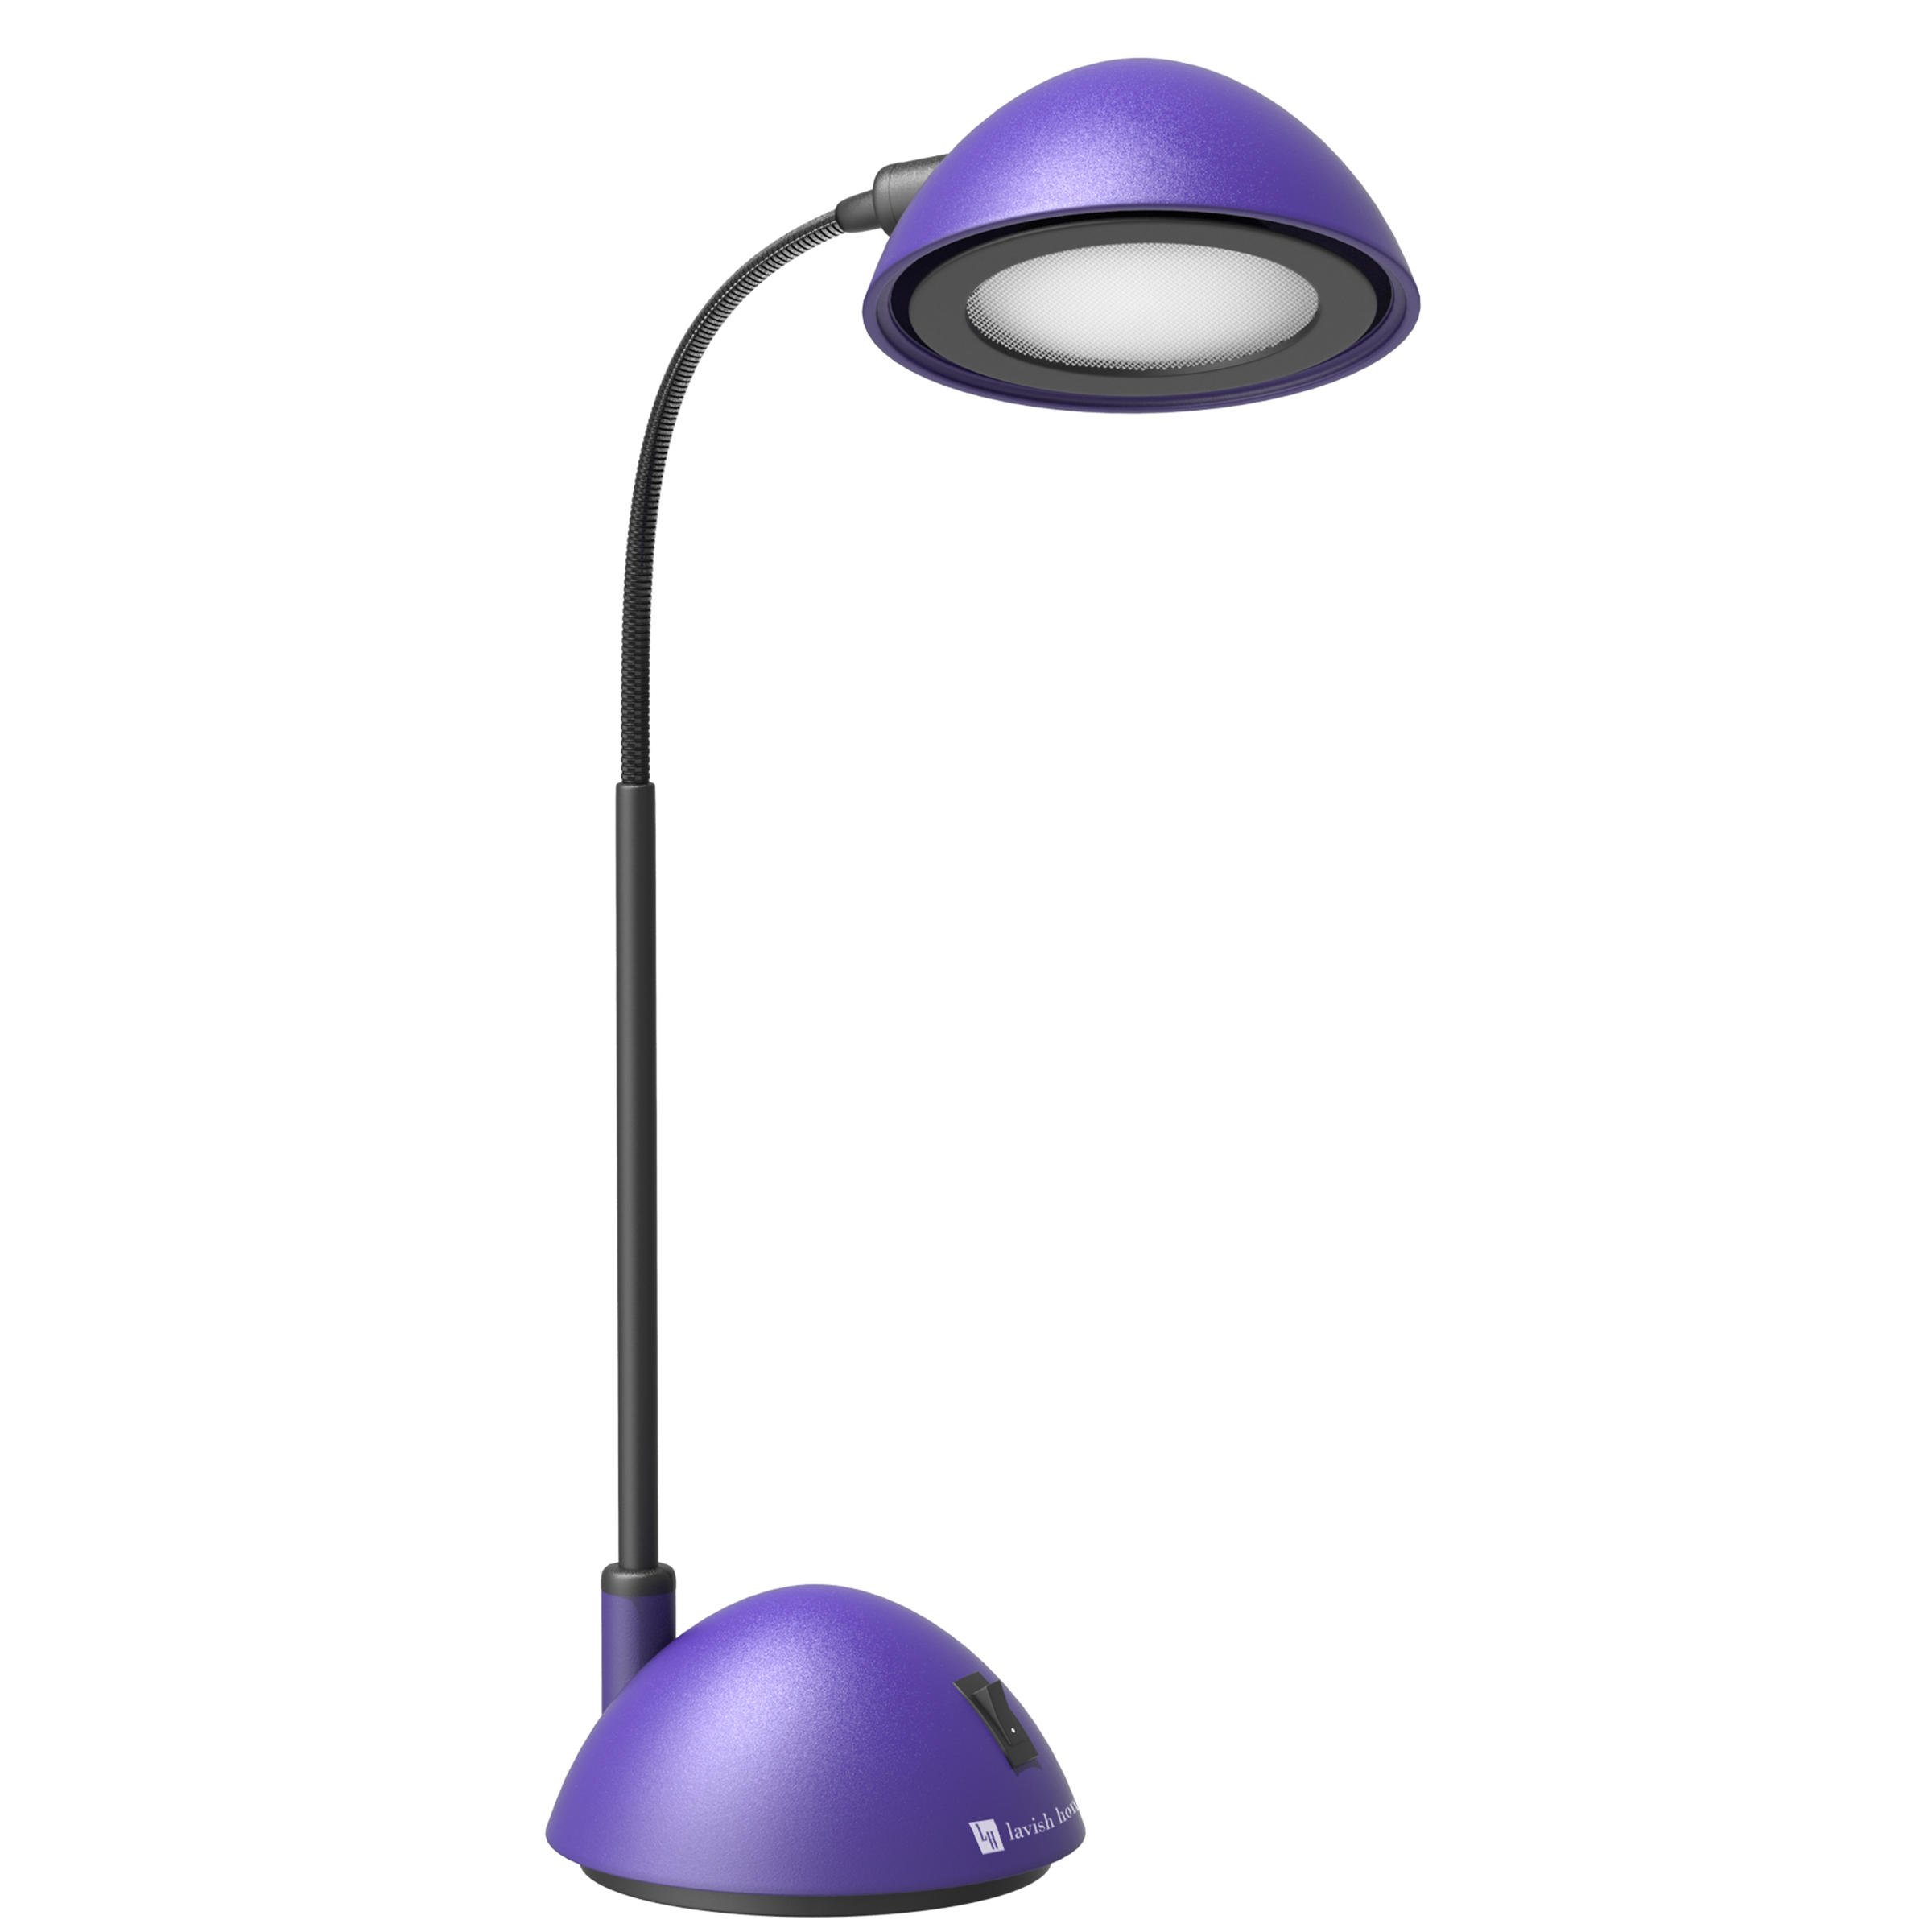 Desk Lamp Adjustable Gooseneck for Reading, Crafts, Writing- Modern Design Light for Bedroom, Home, Office, and Dorm by... by Trademark Global LLC